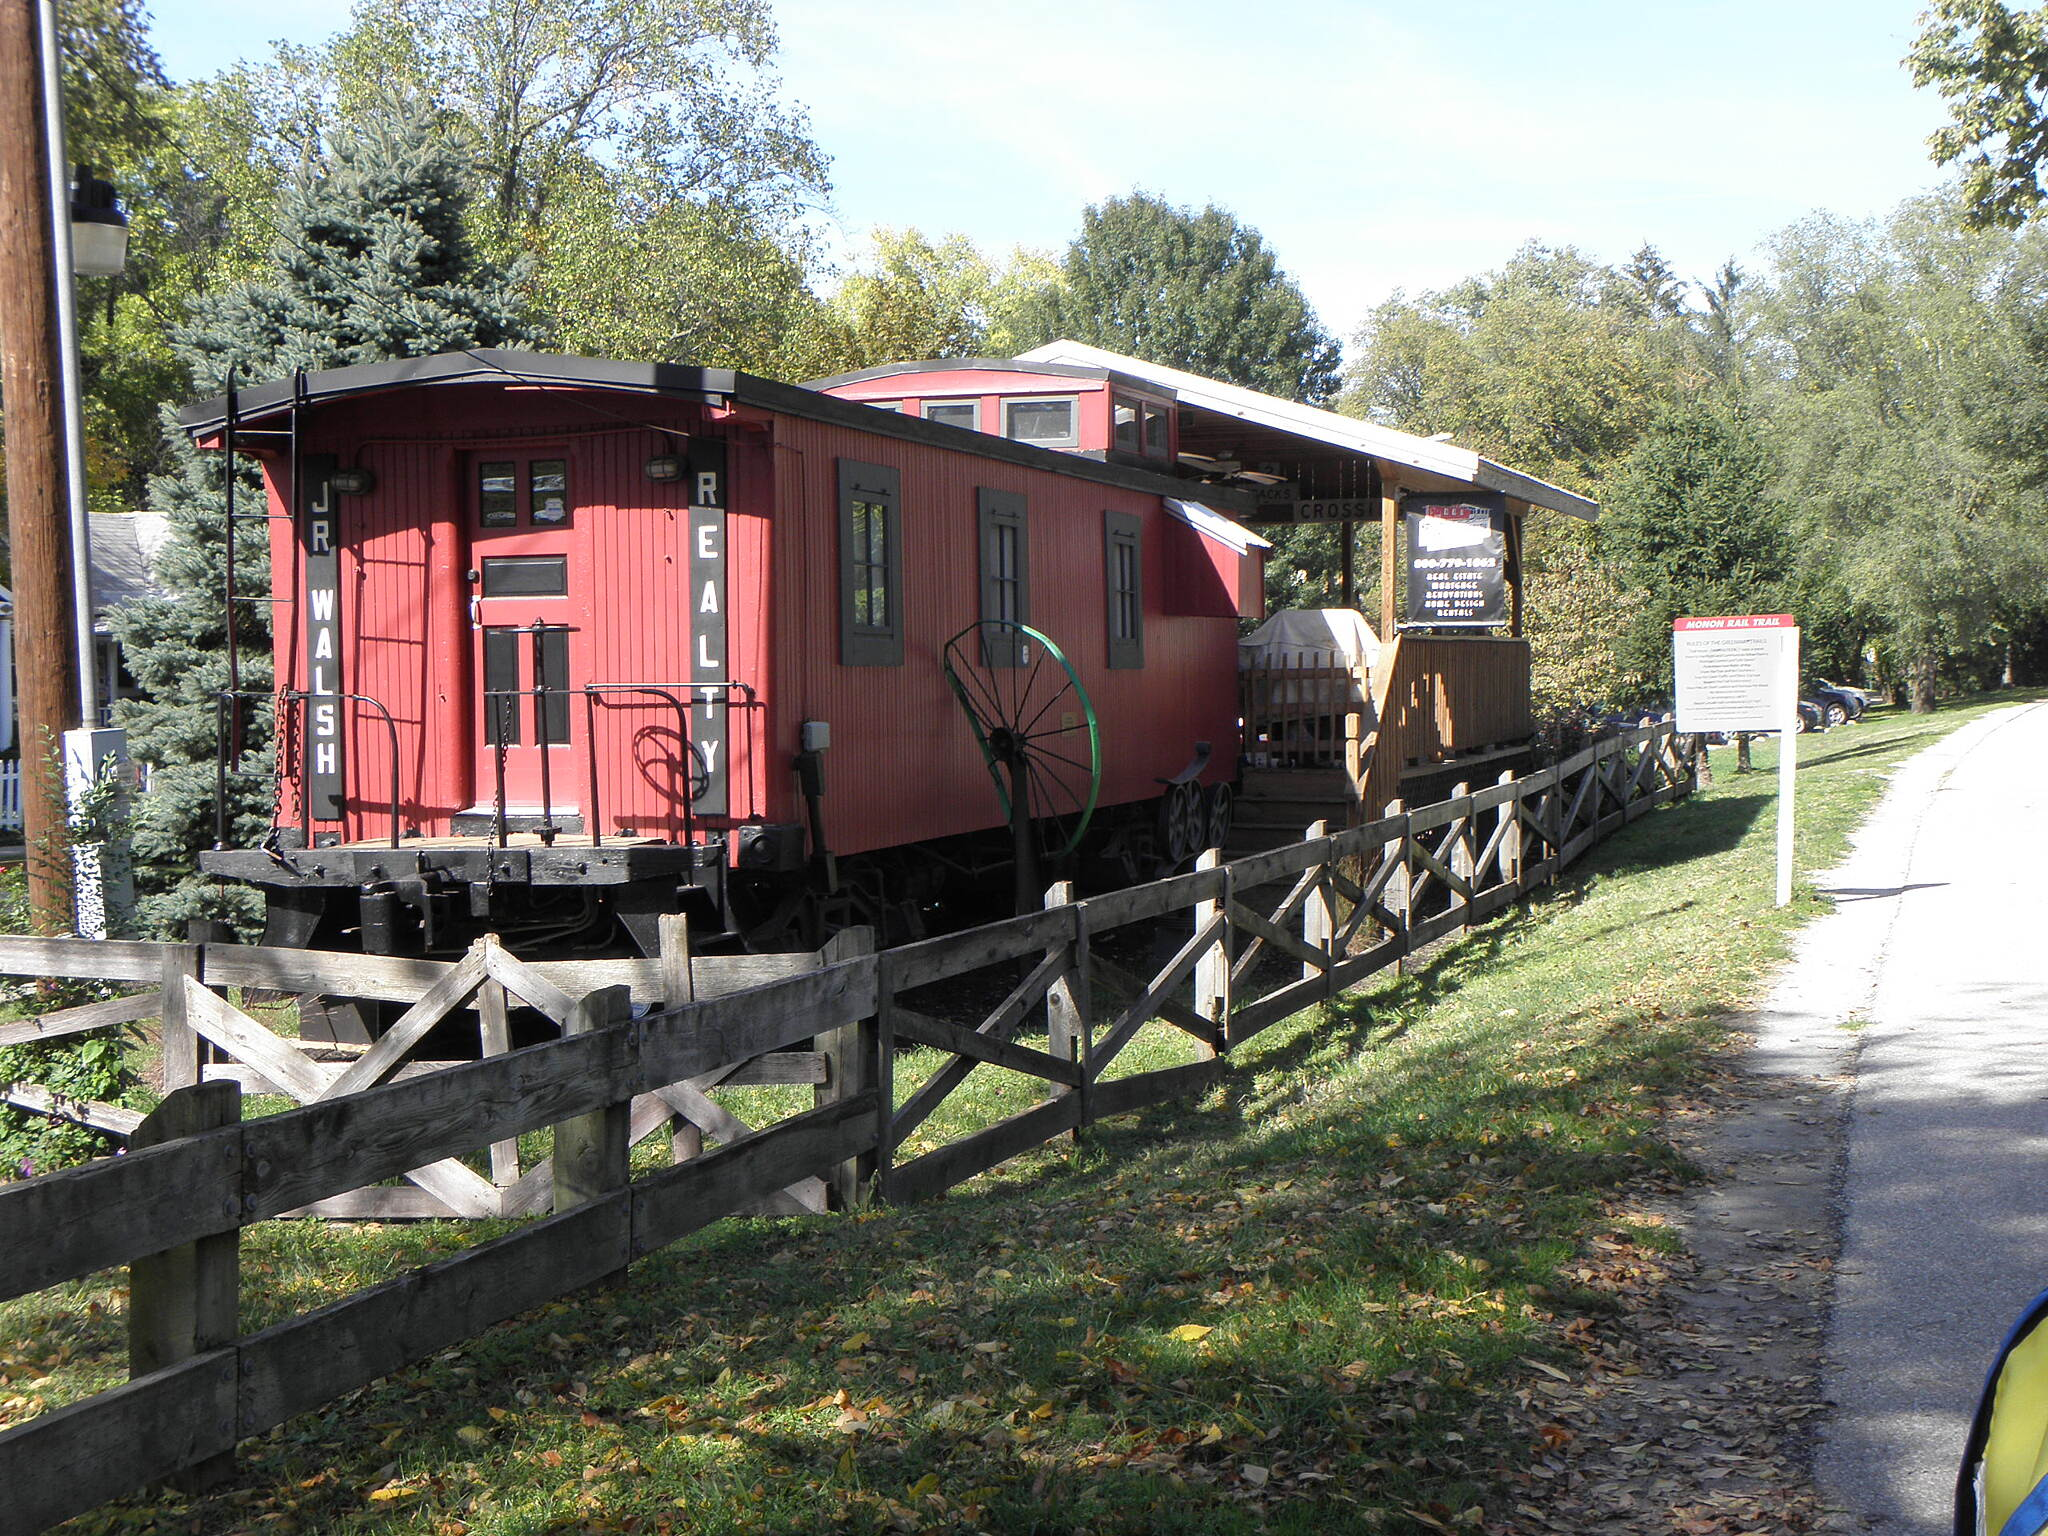 Monon Trail Realty office in a caboose